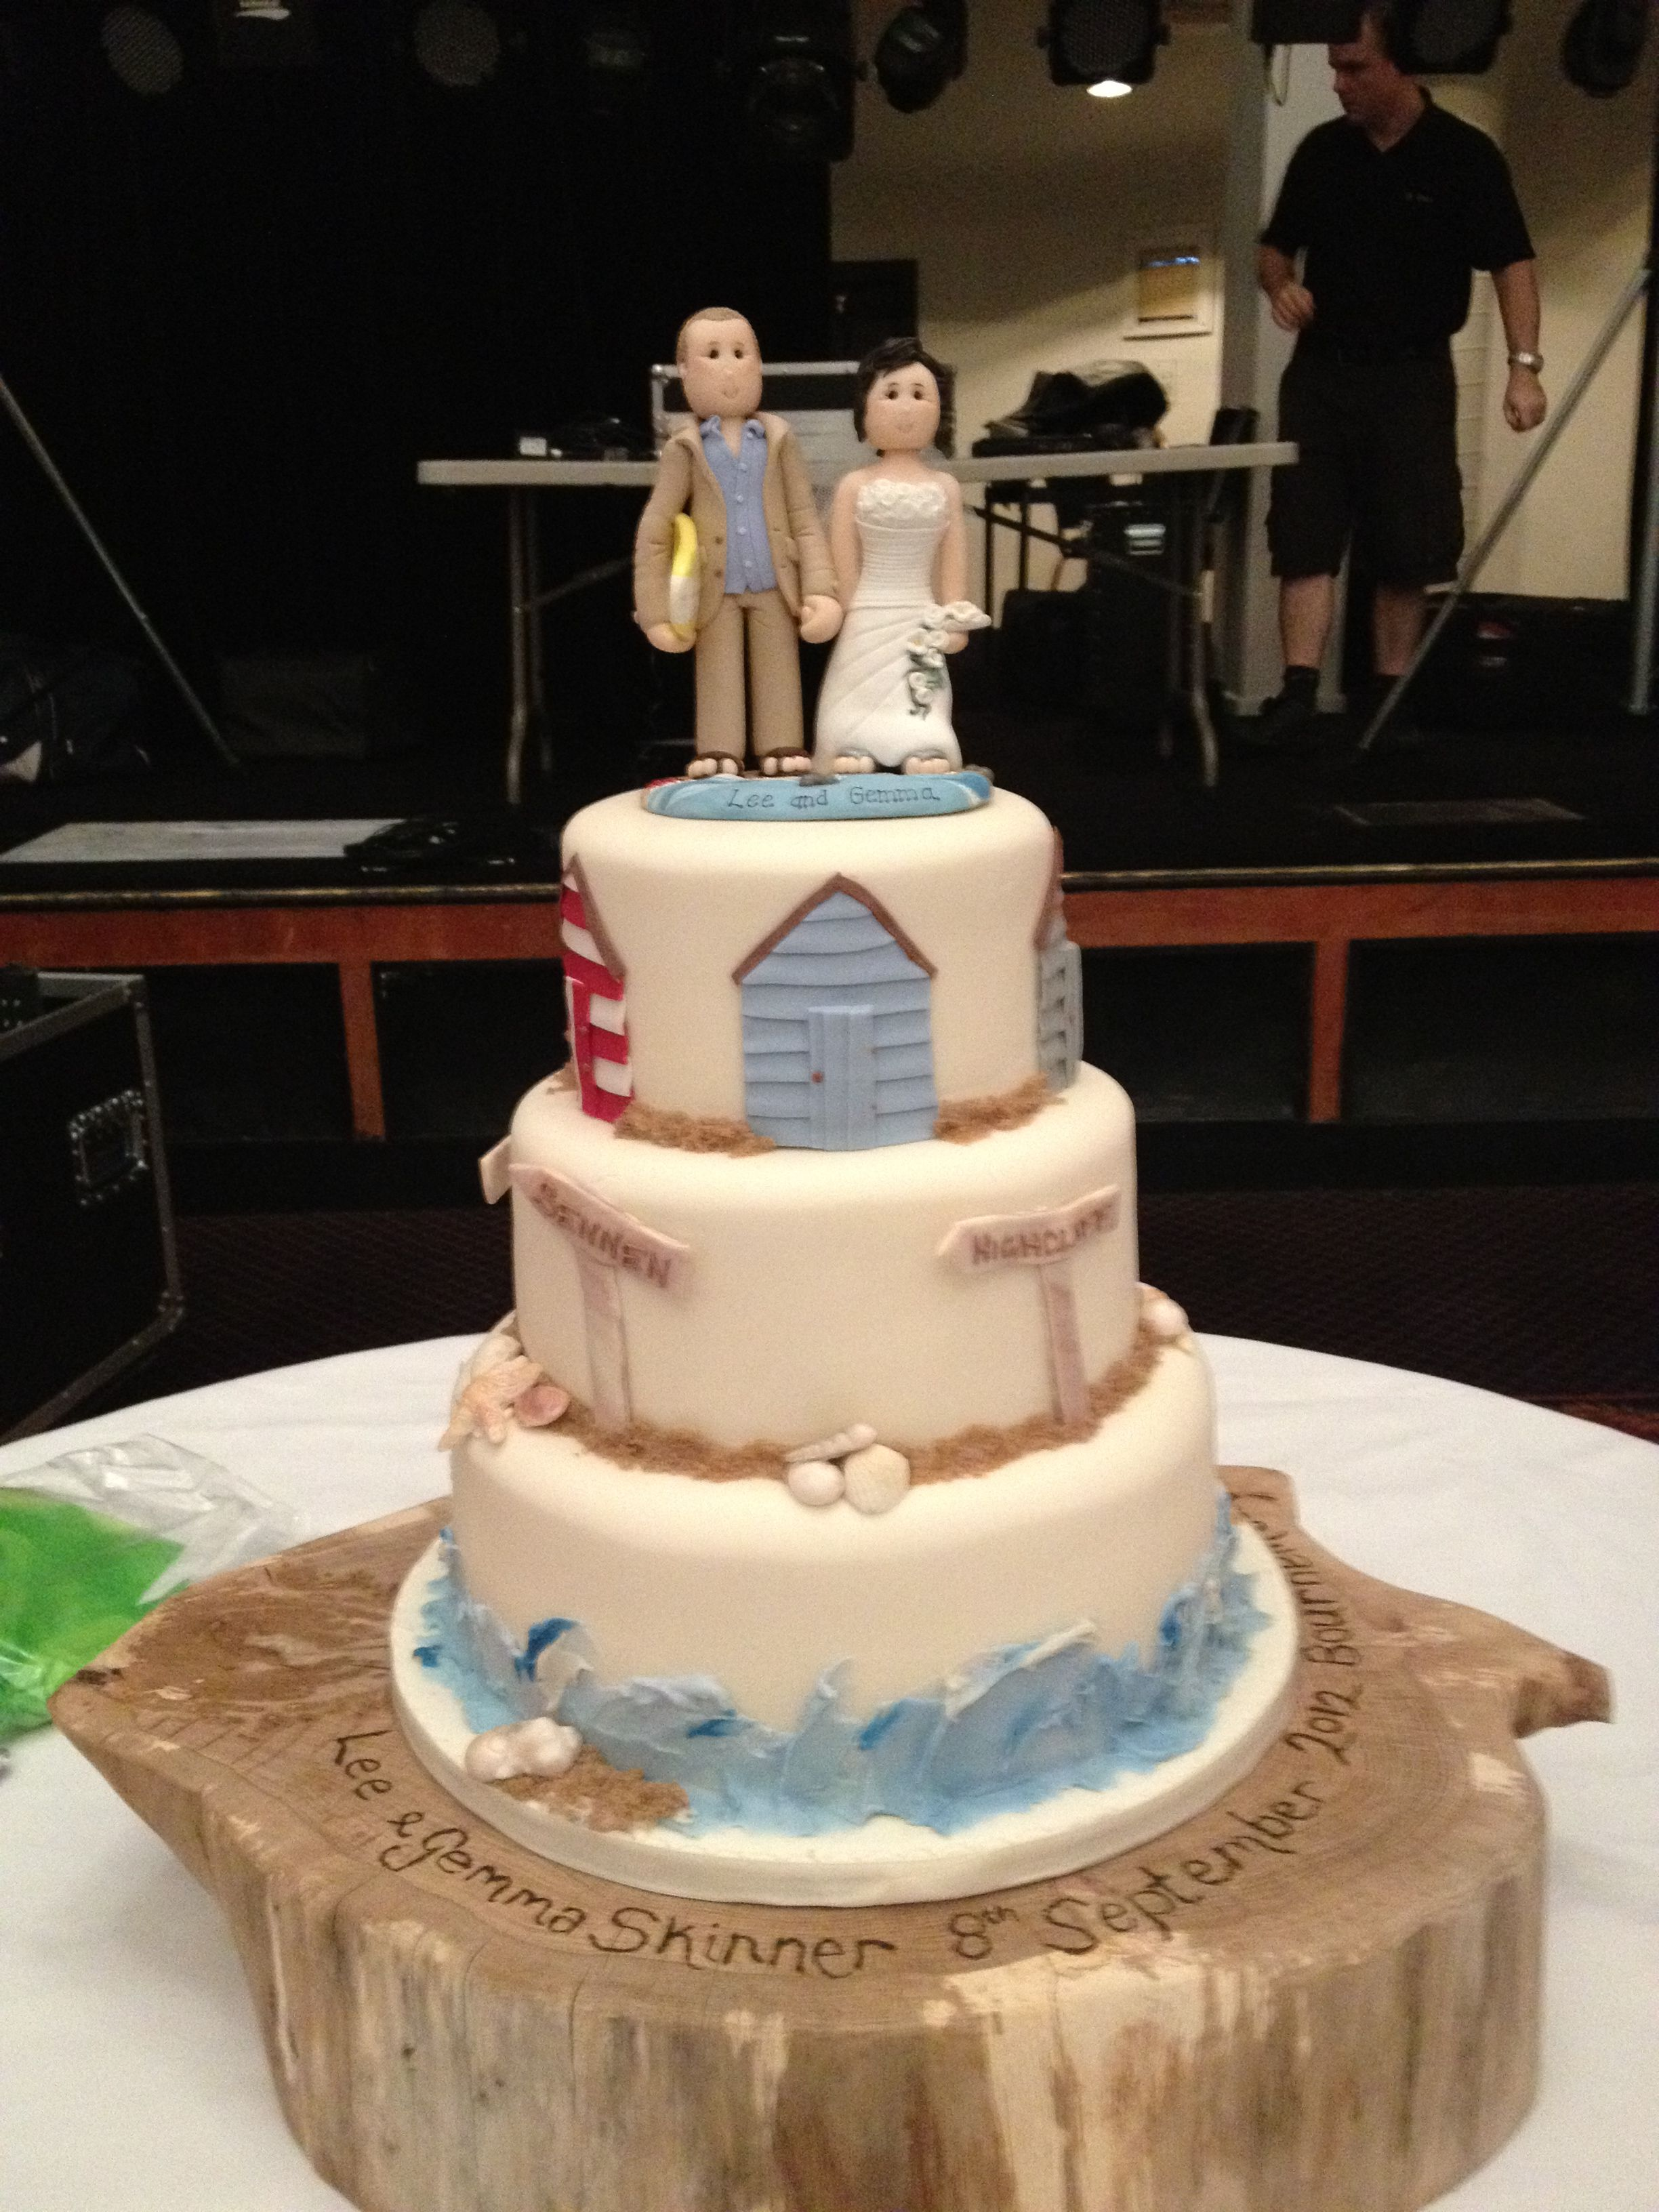 Beach Themed Wedding Cake With Unique Miniatures Of The Bride And